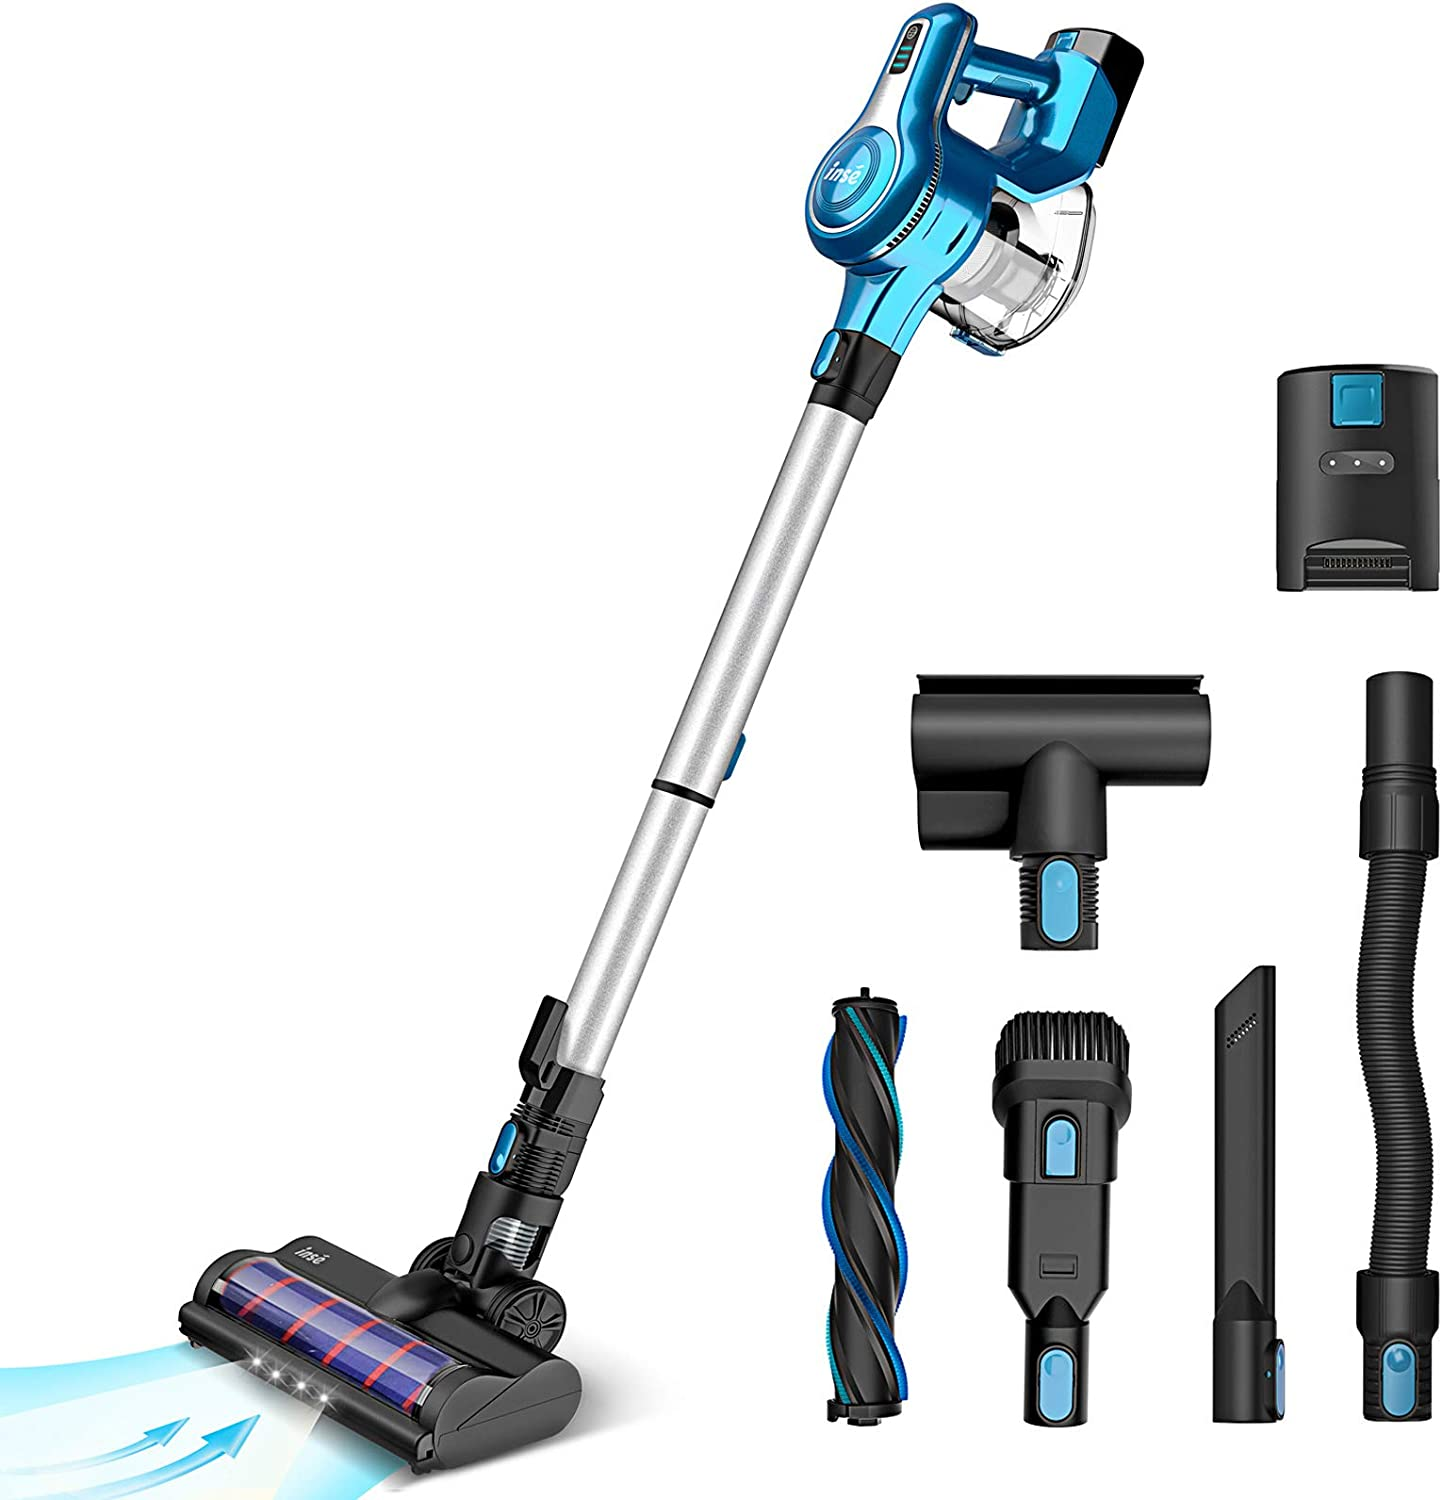 Cordless Vacuum Cleaner, 23Kpa 250W Brushless Motor Stick Vacume, Up to 45 Mins Max Runtime 2500mAh Rechargeable Battery, 5-in-1 Lightweight Handheld for Carpet Hard Floor Car Pet Hair